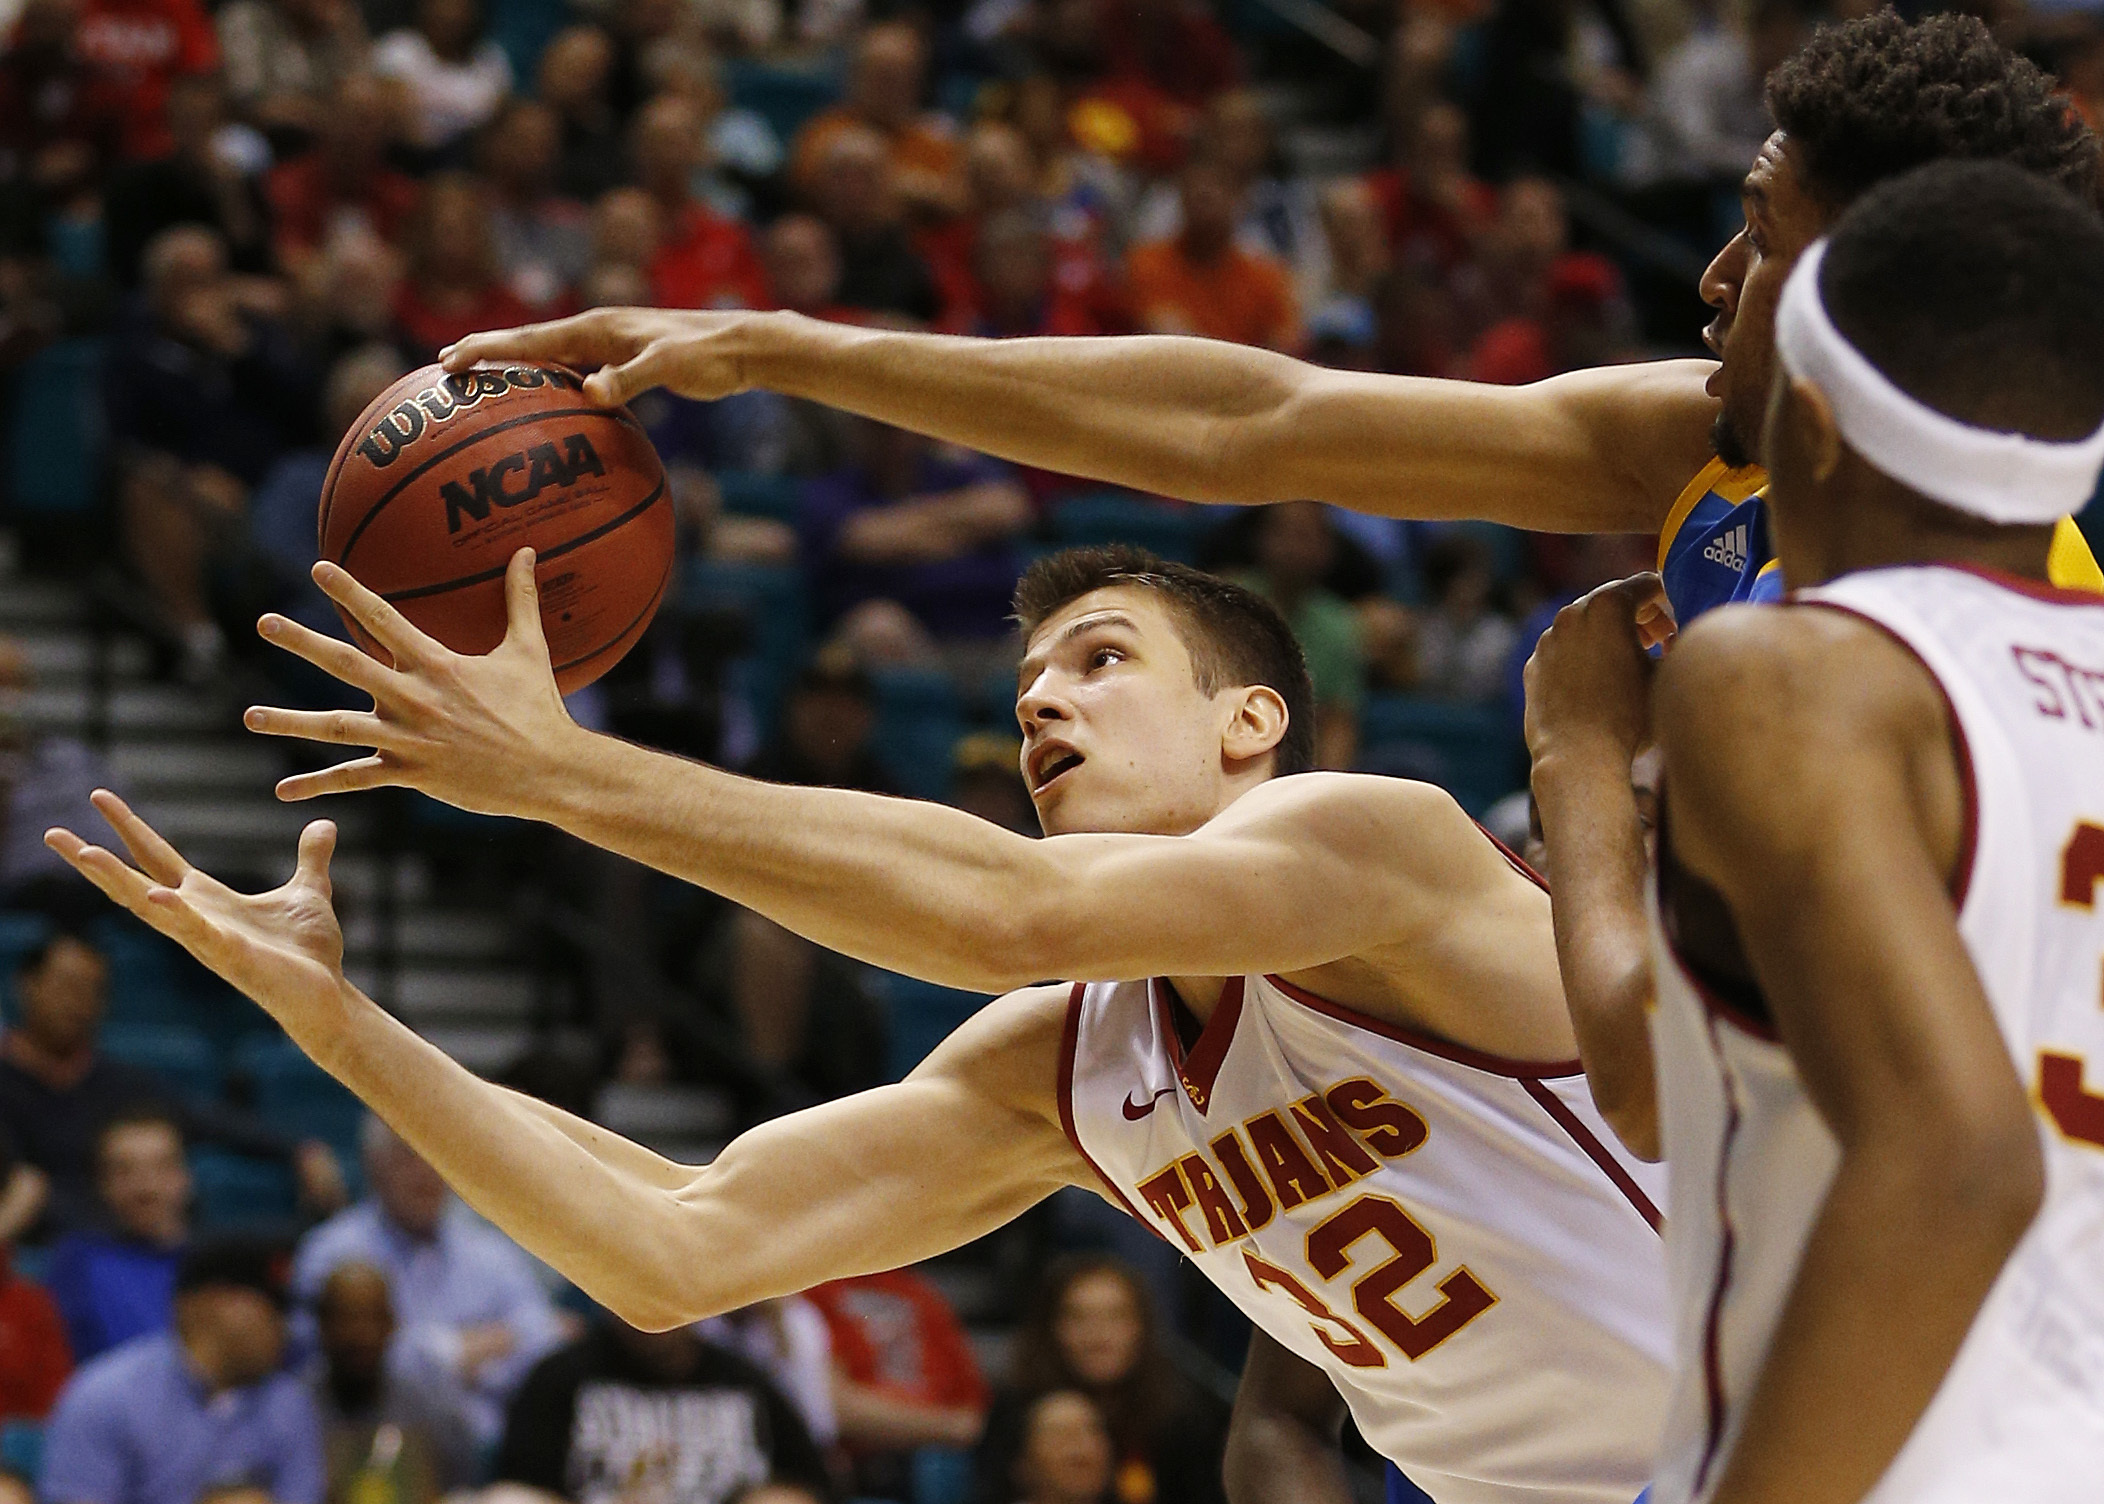 Southern California forward Nikola Jovanovic (32) reaches for the ball during the first half of the team's NCAA college basketball game against UCLA in the first round of the Pac-12 men's tournament Wednesday, March 9, 2016, in Las Vegas. (AP Photo/John L